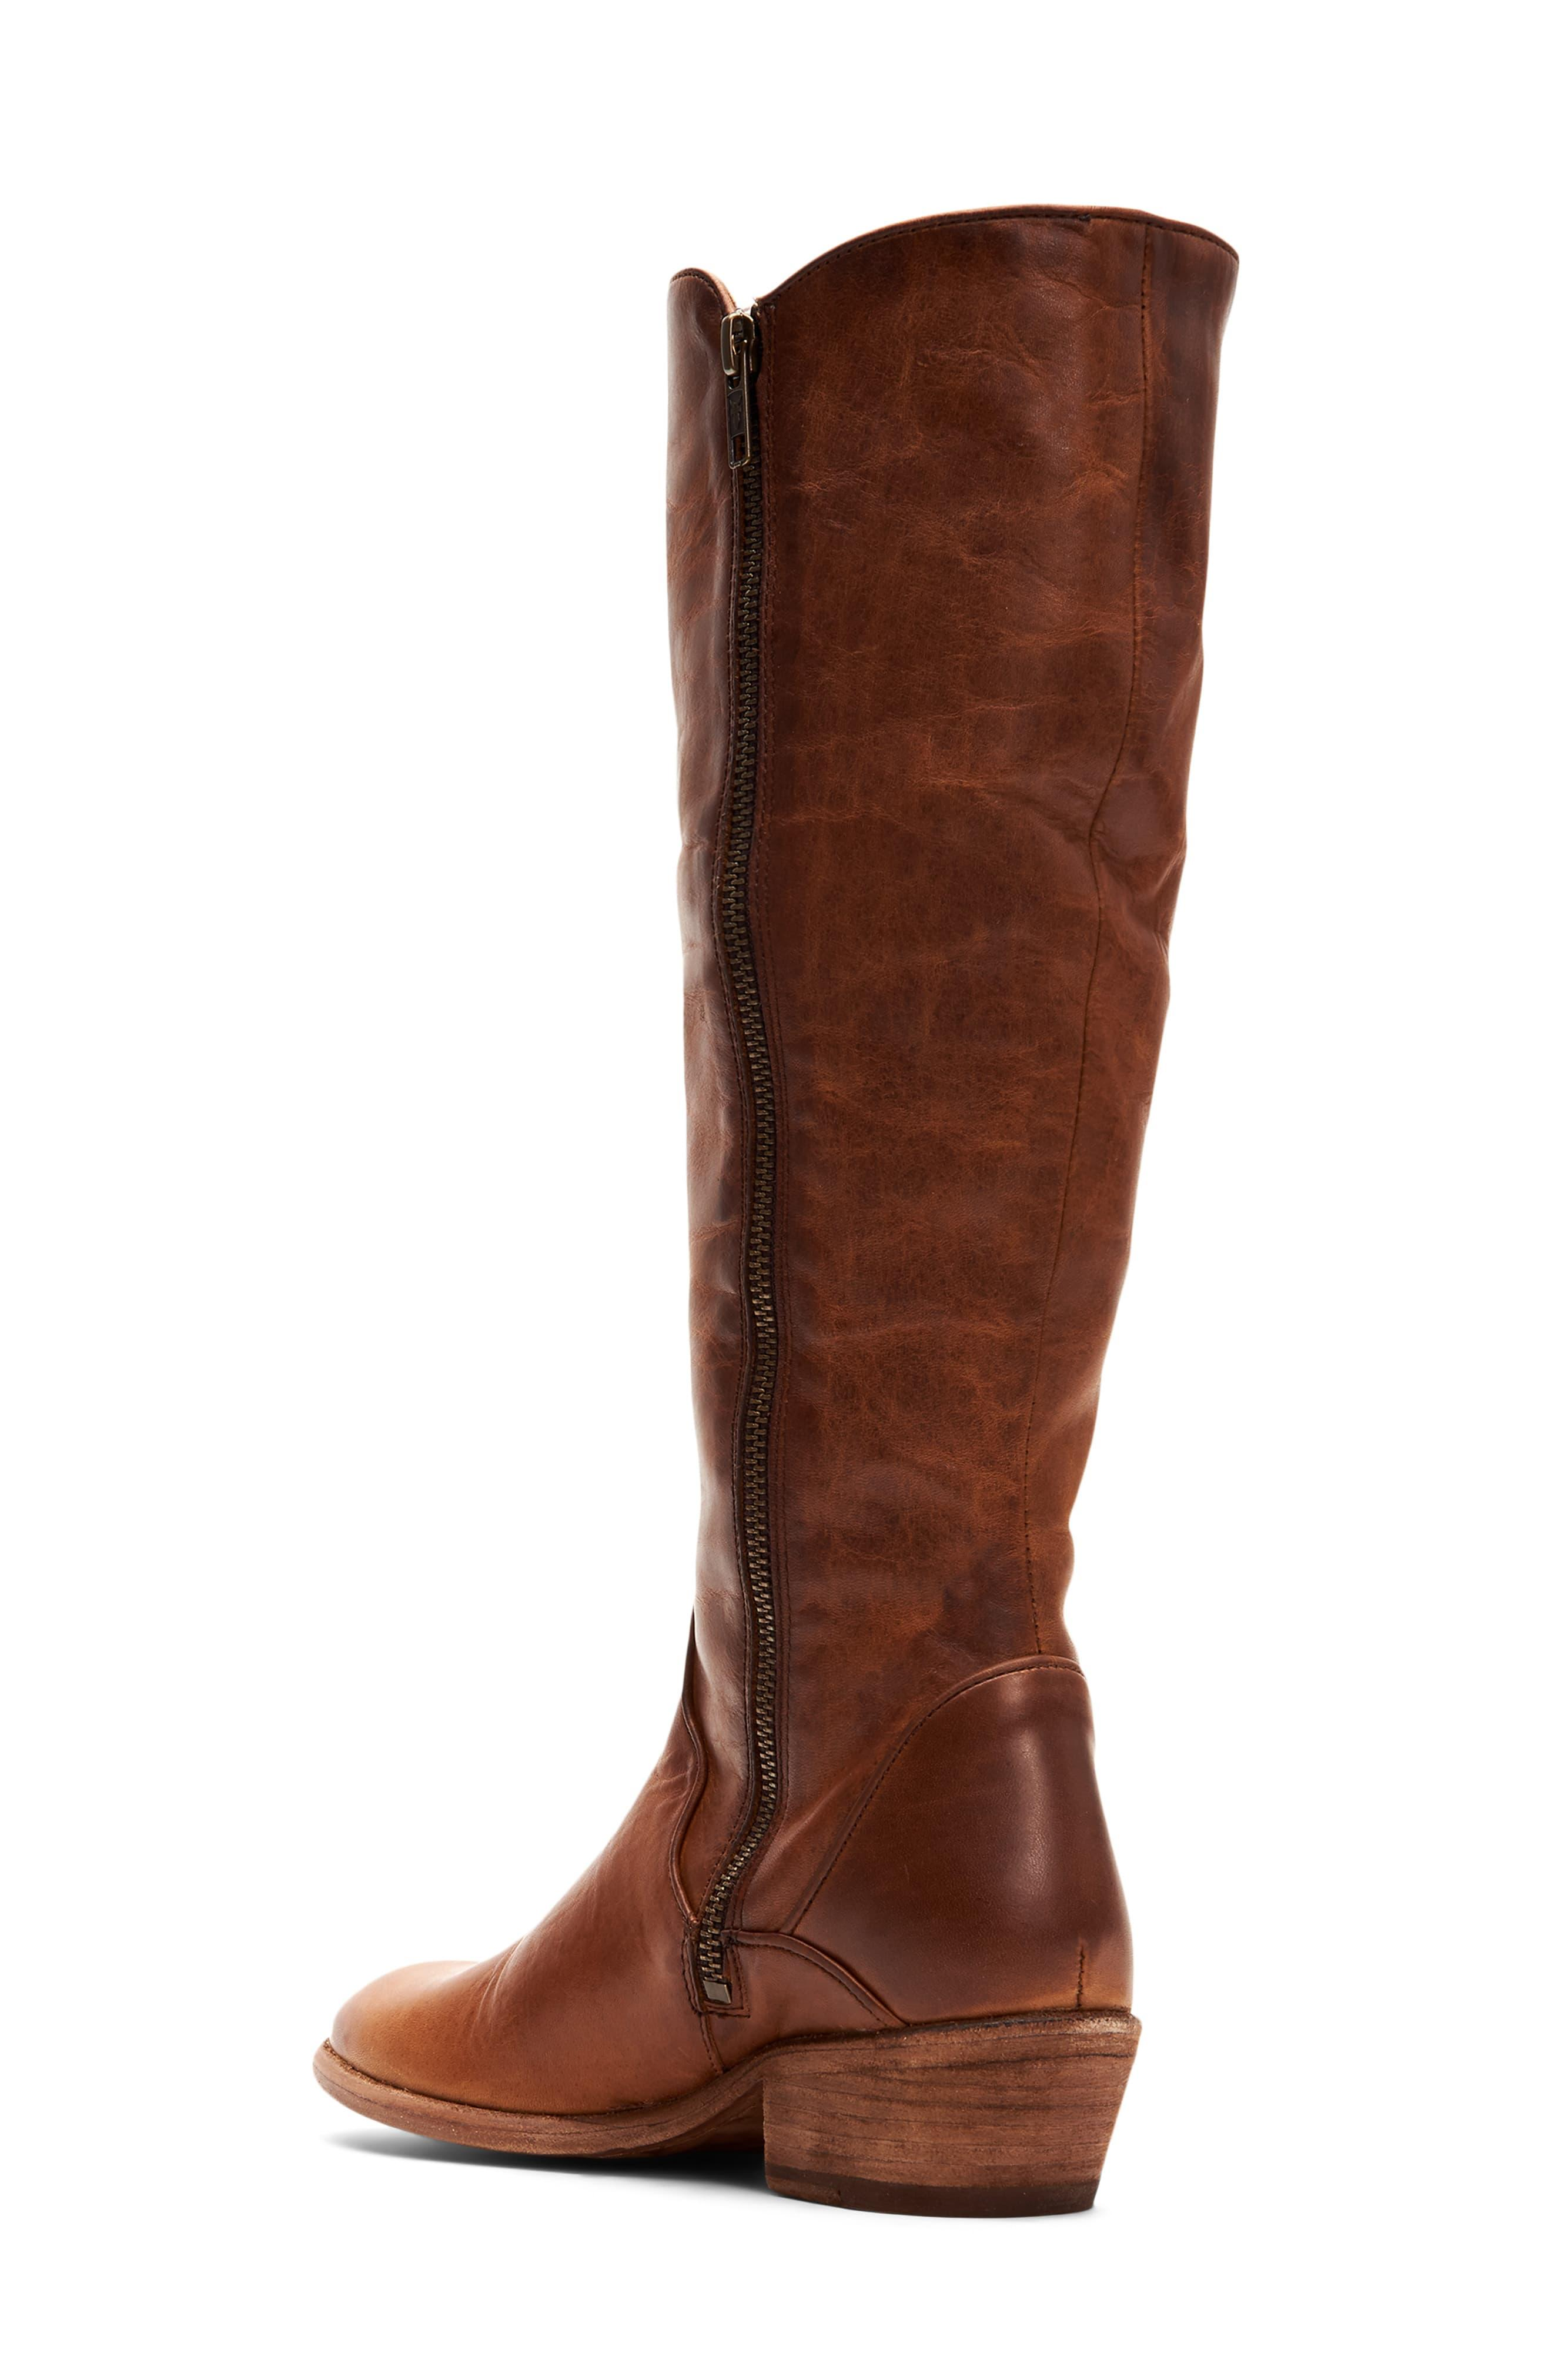 Frye Leather Carson Knee High Boot In Caramel Leather